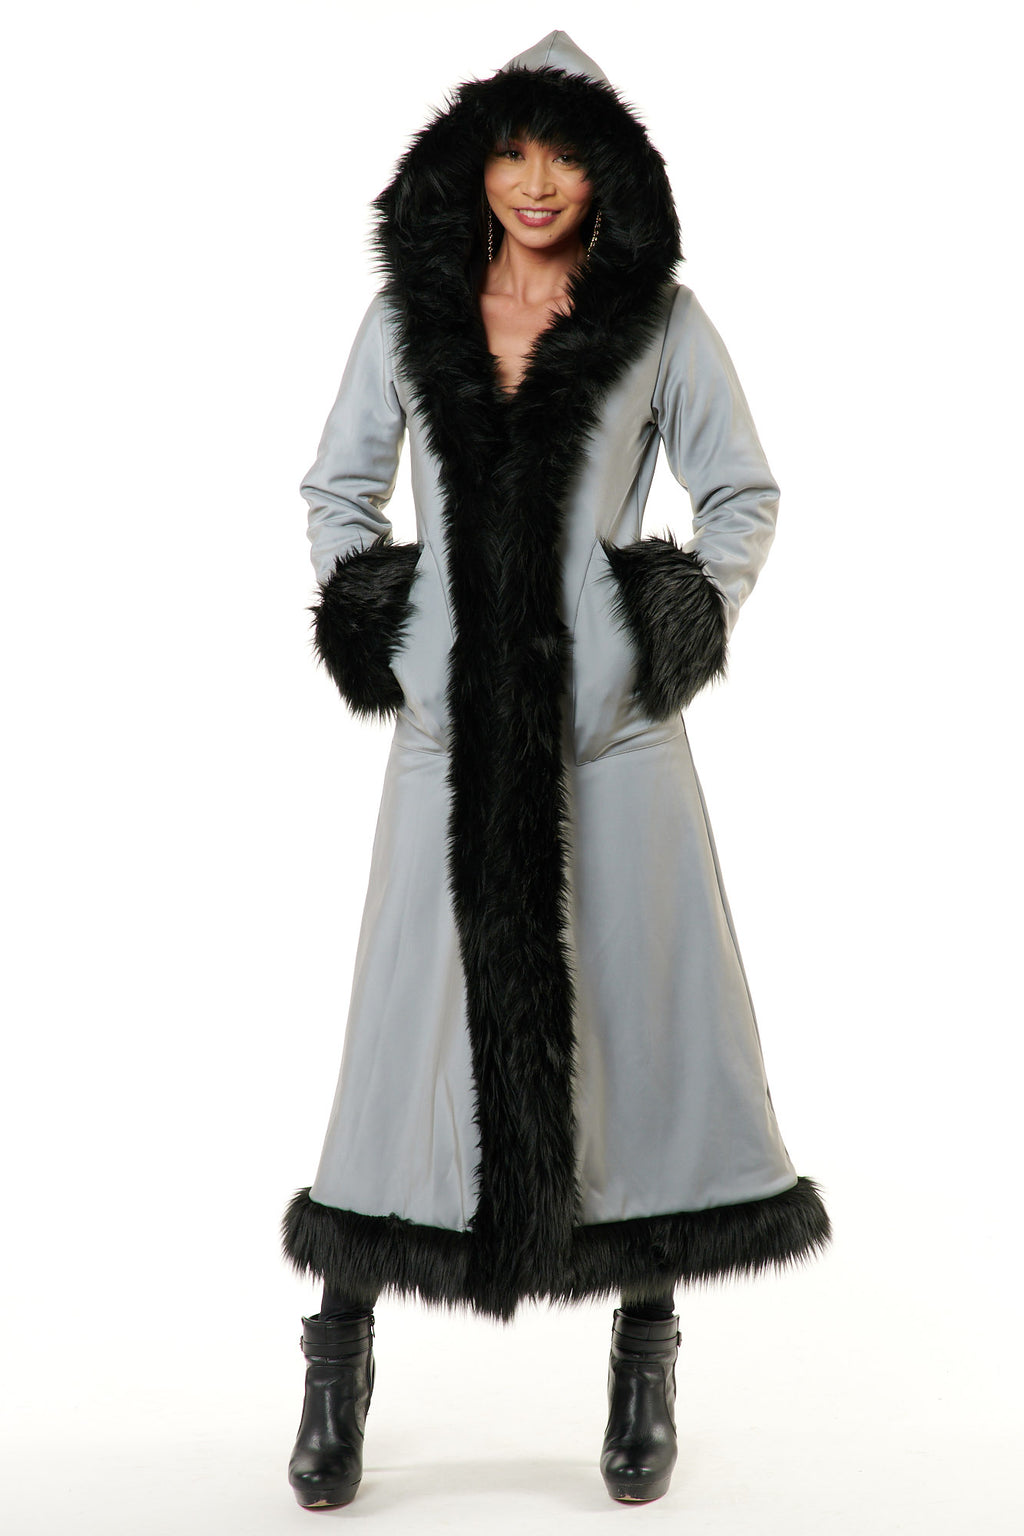 Deluxe Baroness Coat: Full On Reflective + Black Faux Fur Trim